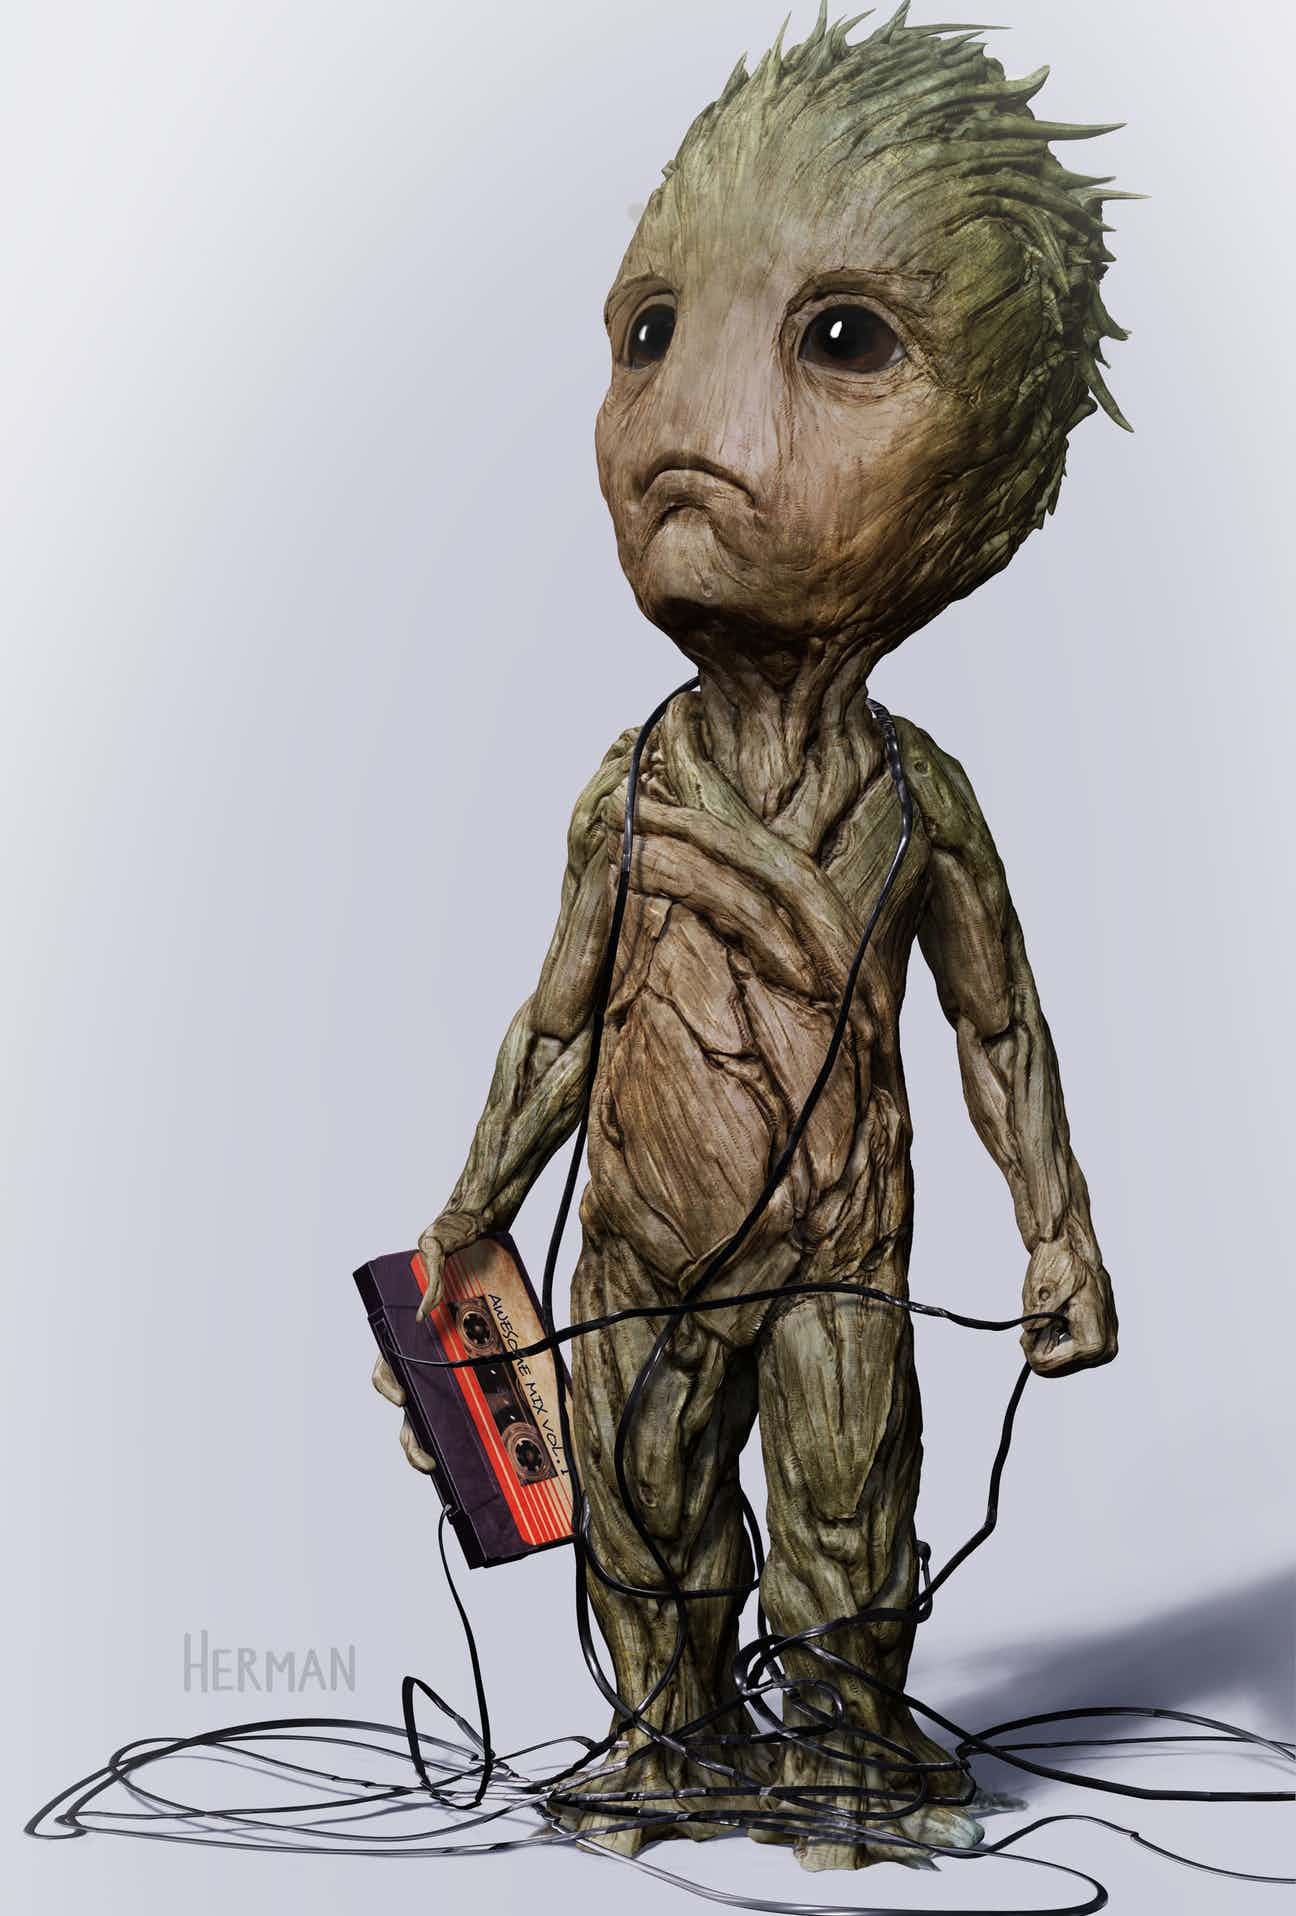 Guardians Of The Galaxy Vol. 2 Baby Groot Concept Art Will Melt Your Heart